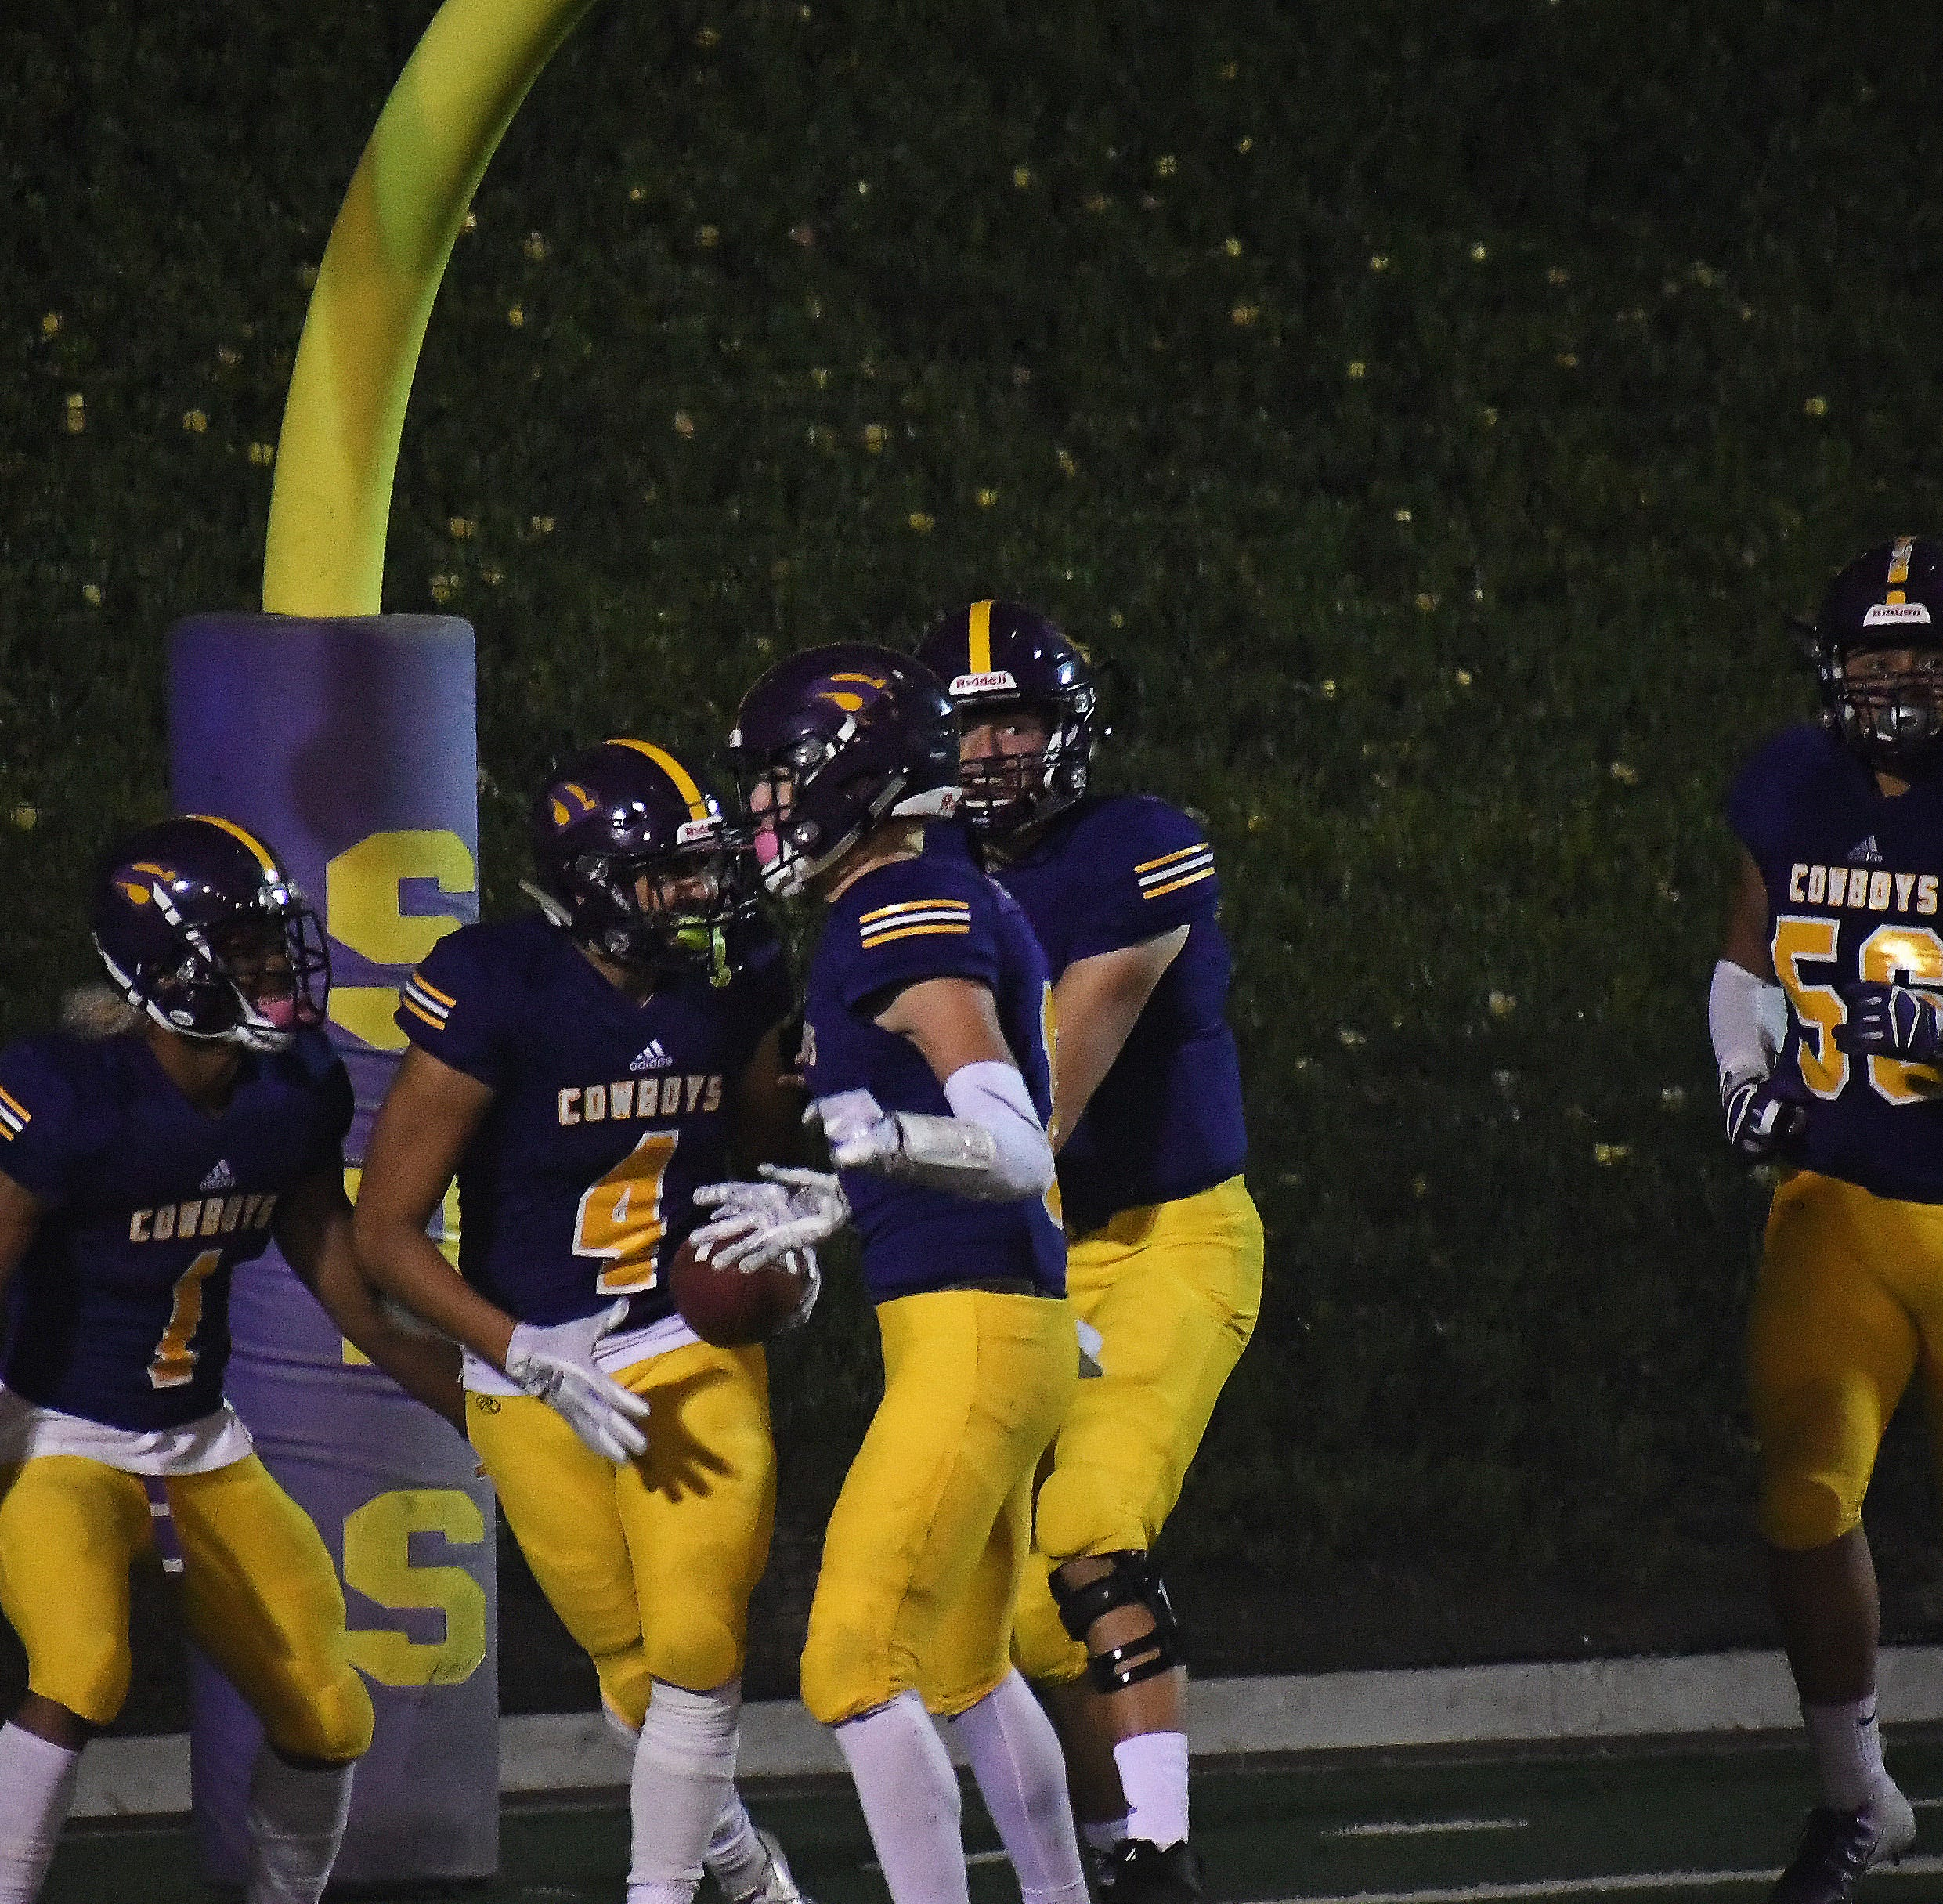 Palma, Salinas roll over opponents Friday night in CCS openers